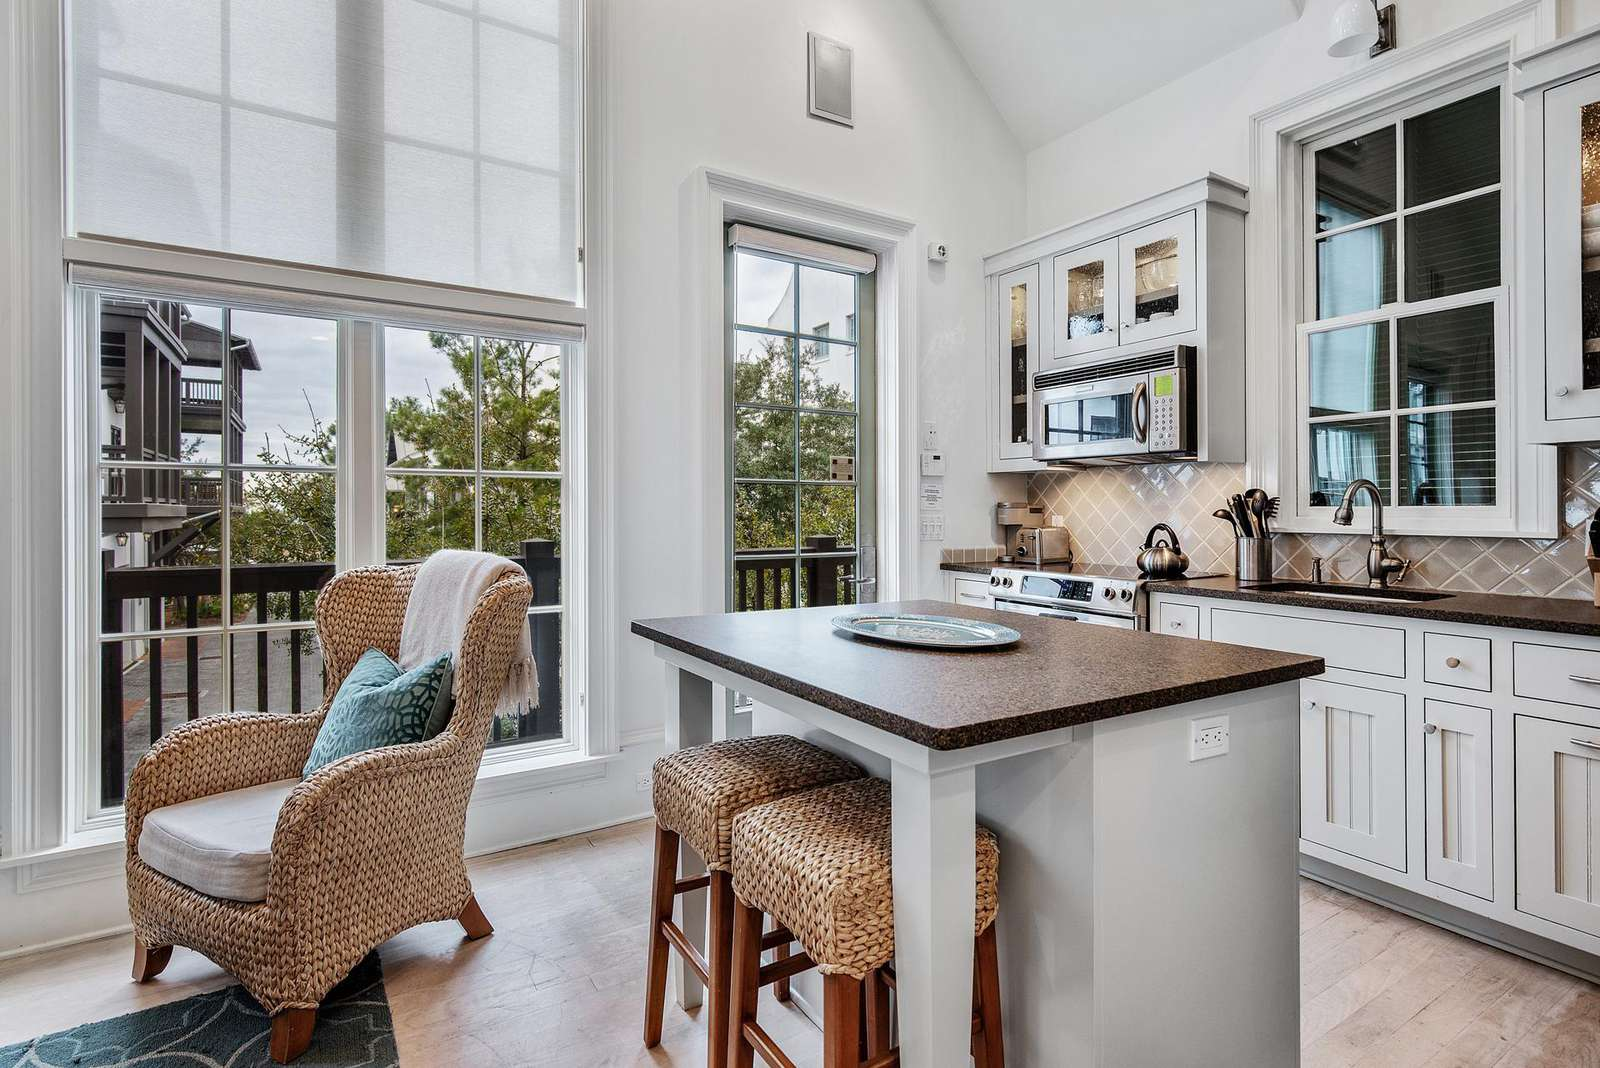 Kitchen Island for seating for two